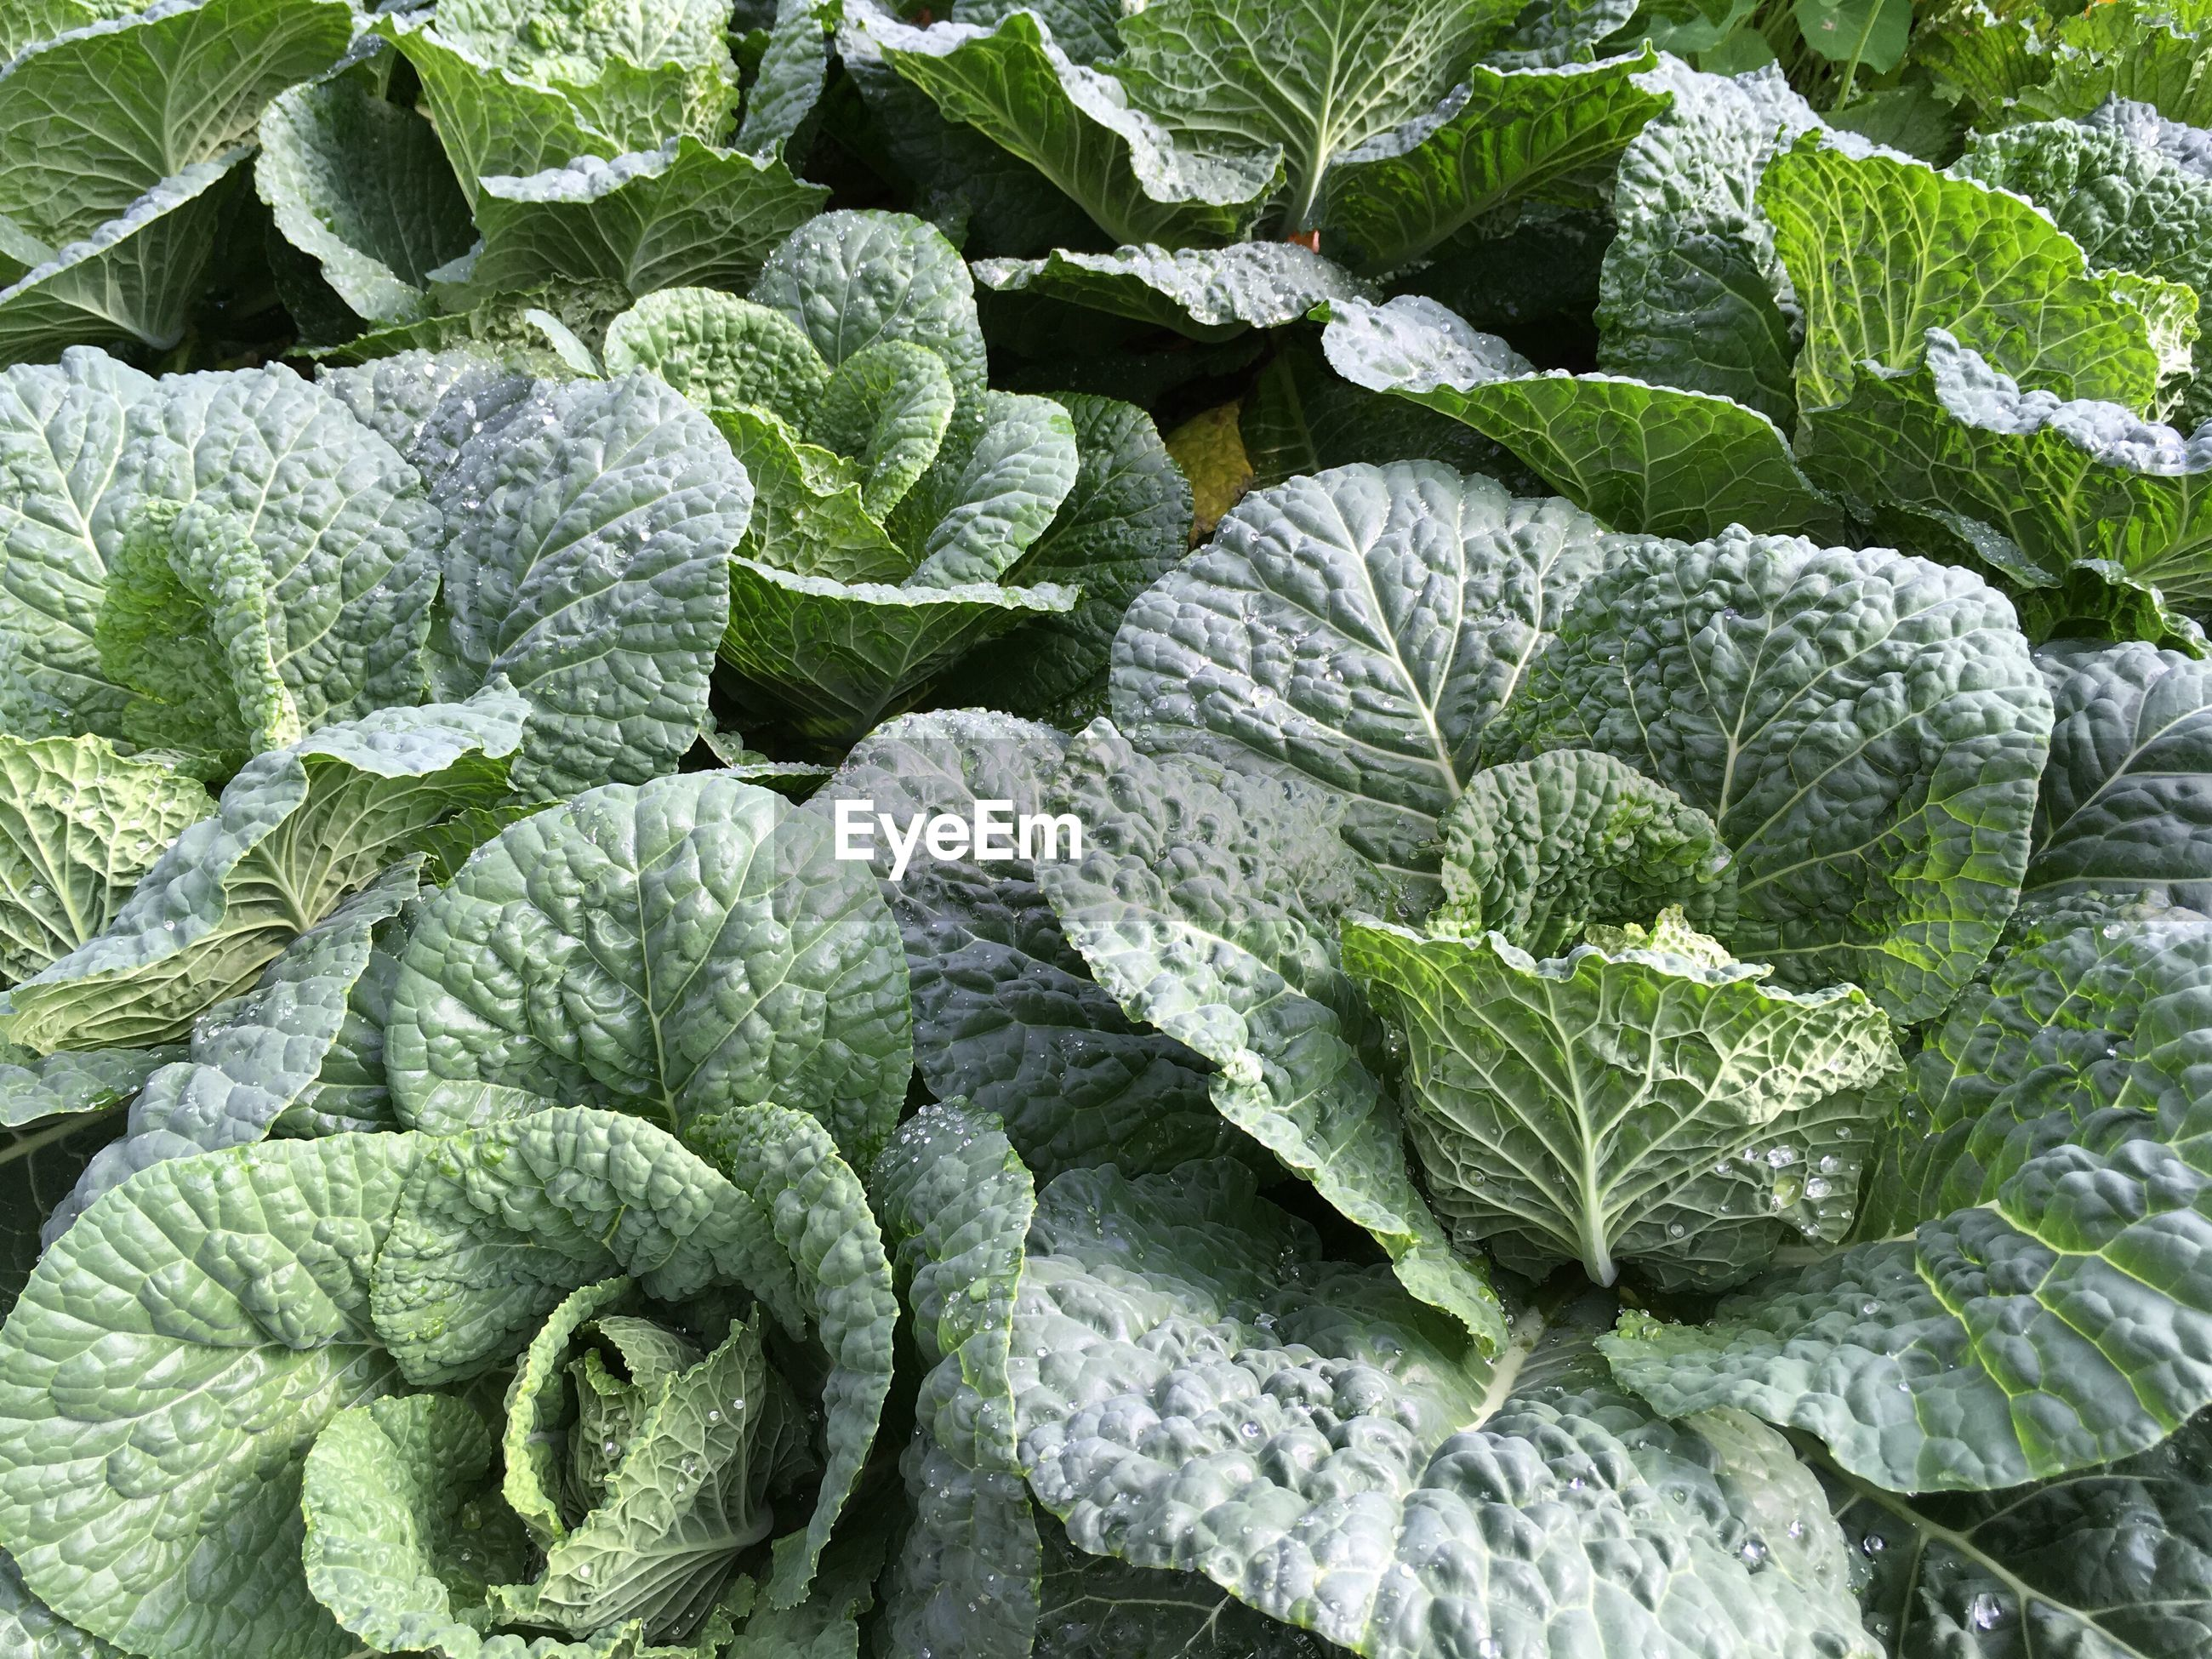 High angle view of kale growing in garden